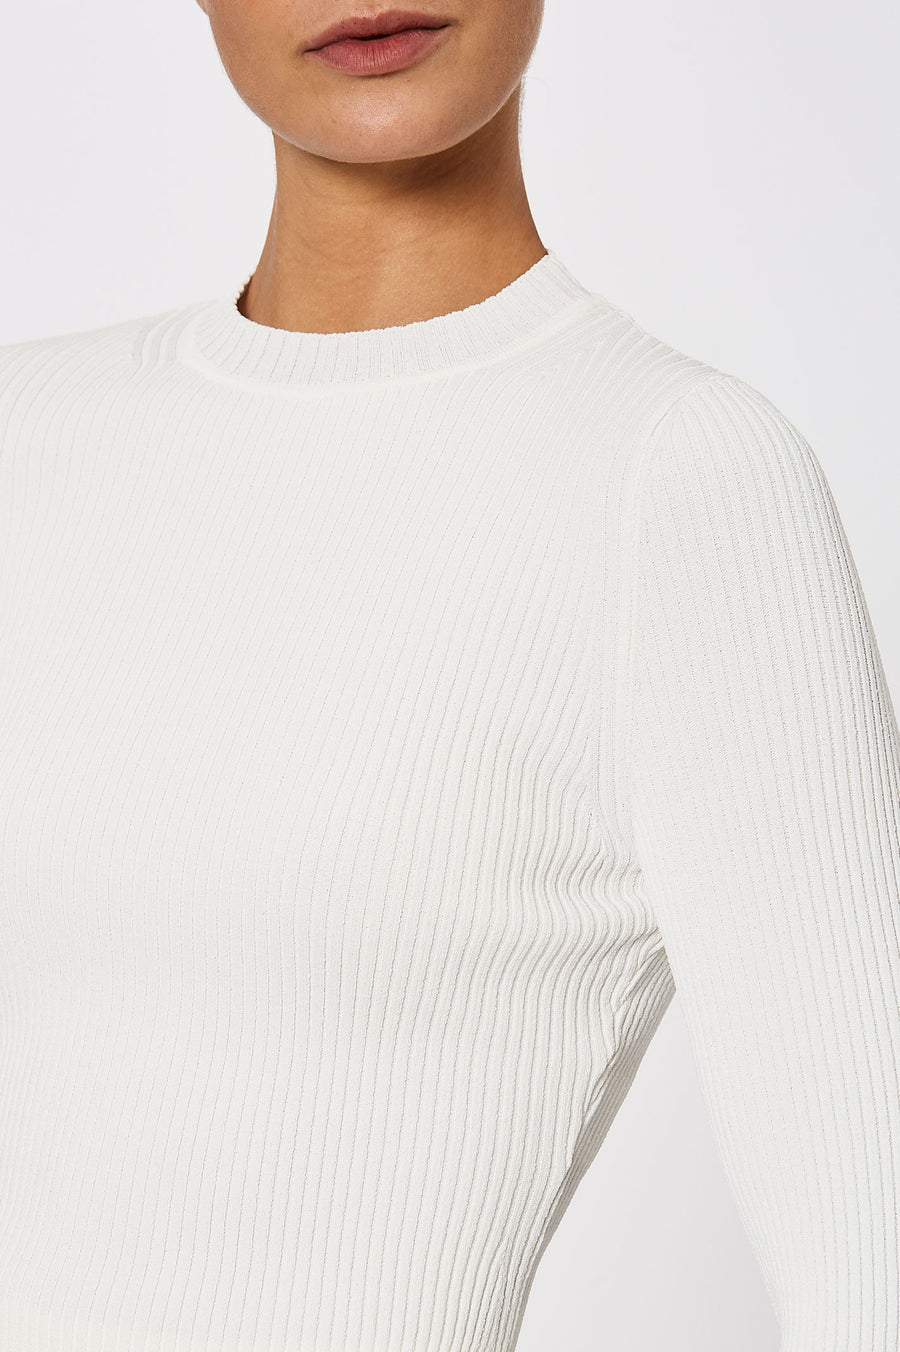 Crepe Knit Rib Sweater Cream - Scanlan Theodore